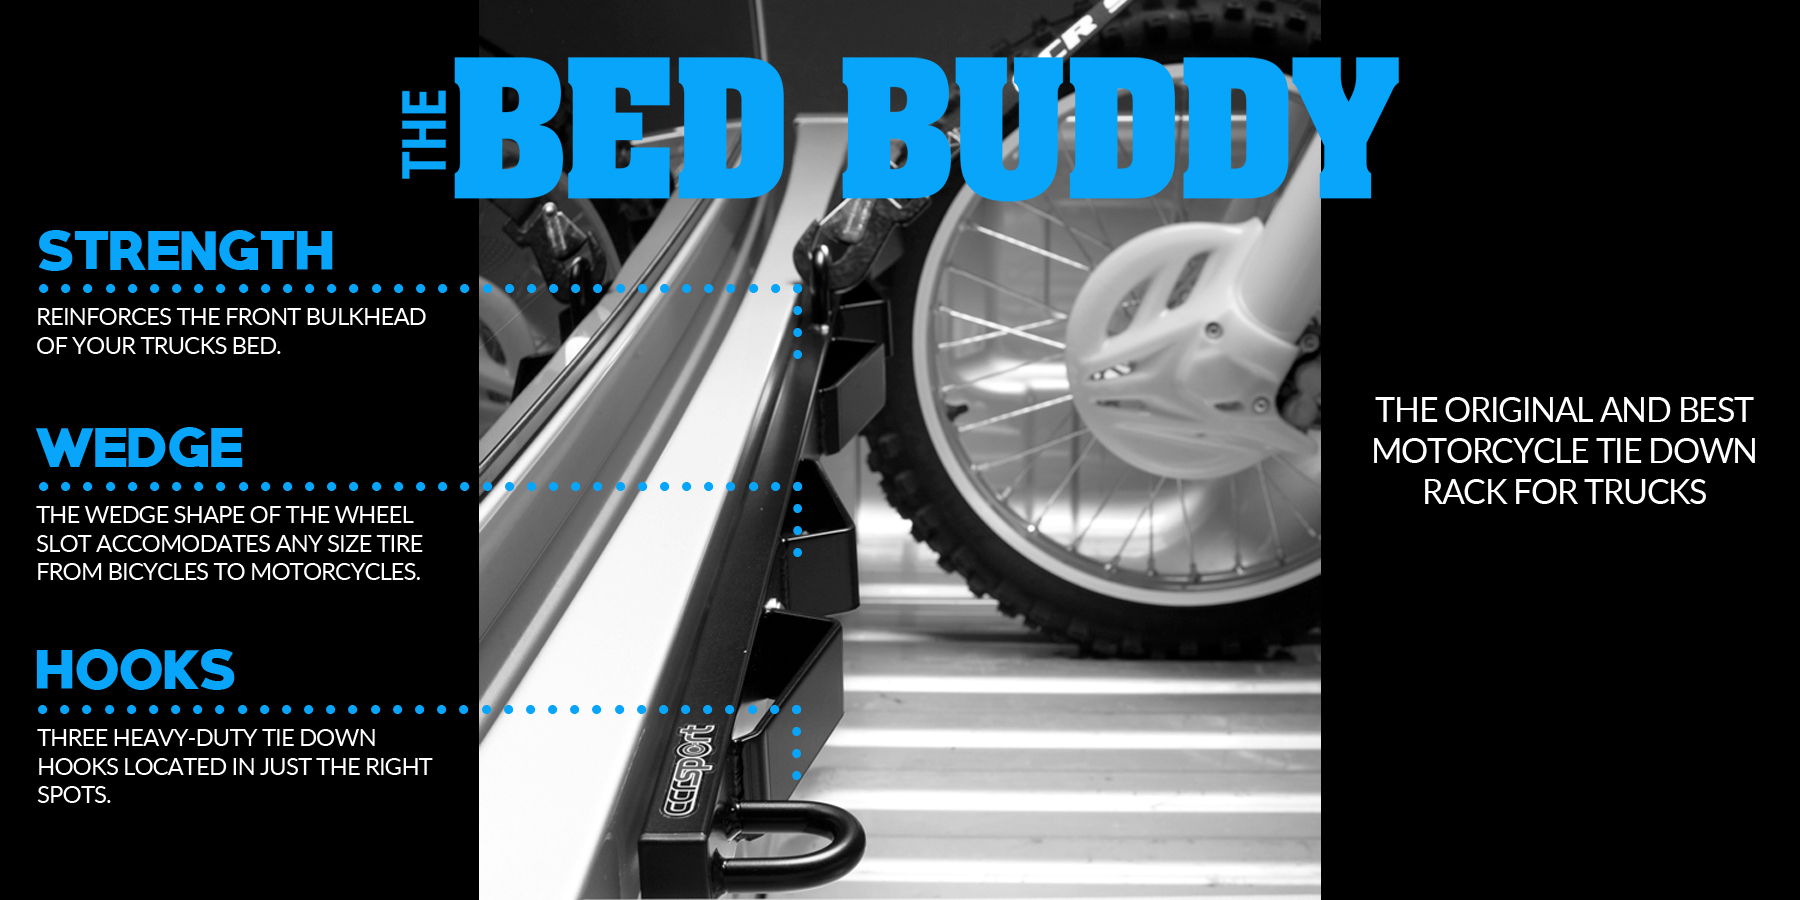 The original motorcycle tie down rack for trucks, the Bed Buddy is a best seller and a must have for anybody that transports two wheeled vehicles in their truck, van or trailer.